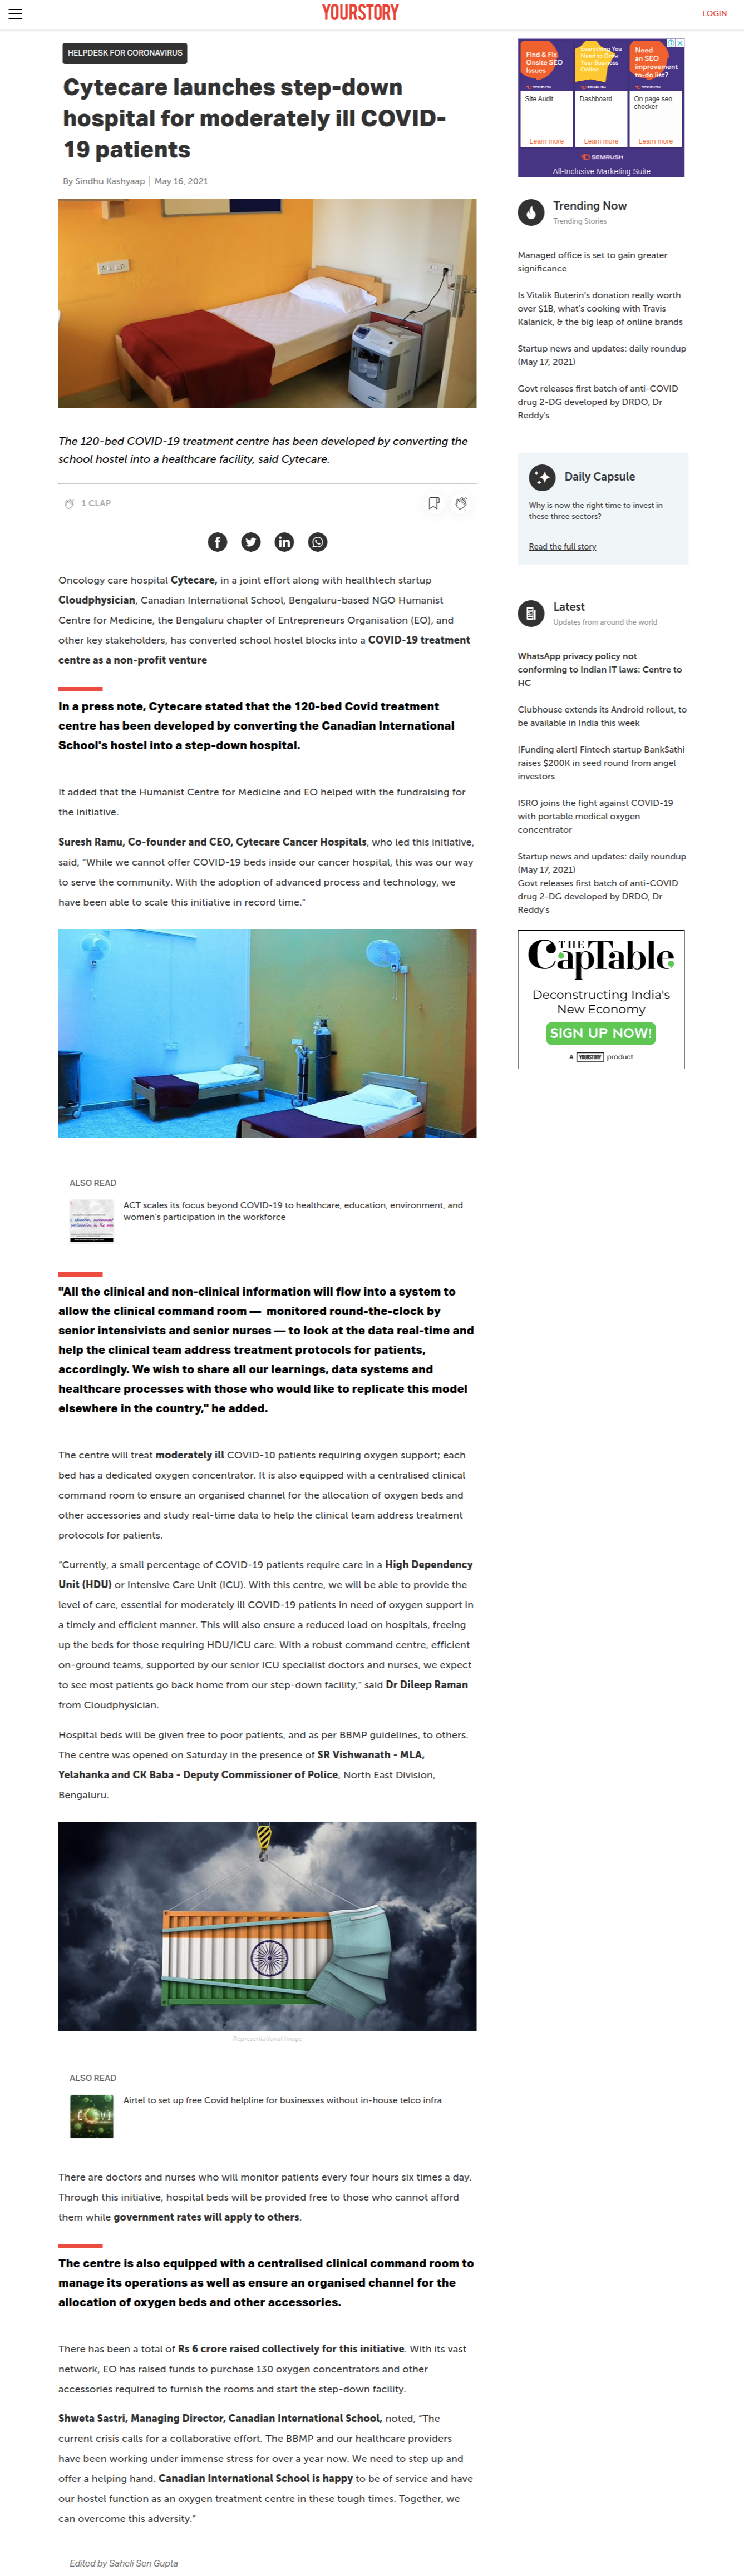 Cytecare launches step-down hospital for moderately ill COVID-19 patients